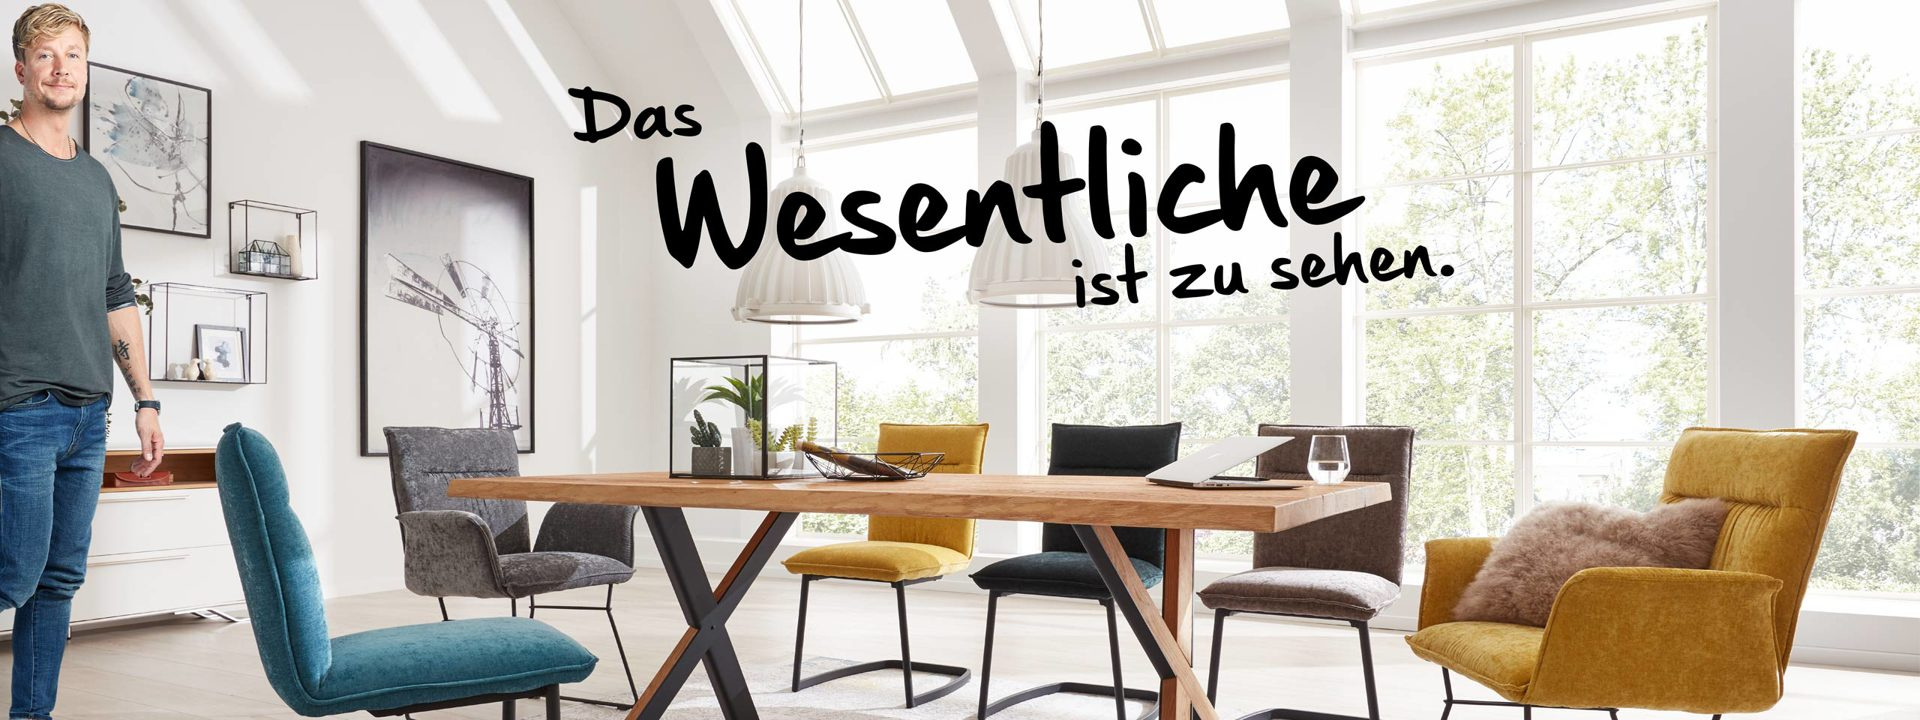 Interliving Esszimmer Serie 5106 Samu Haber2020 HF Highlight16 6